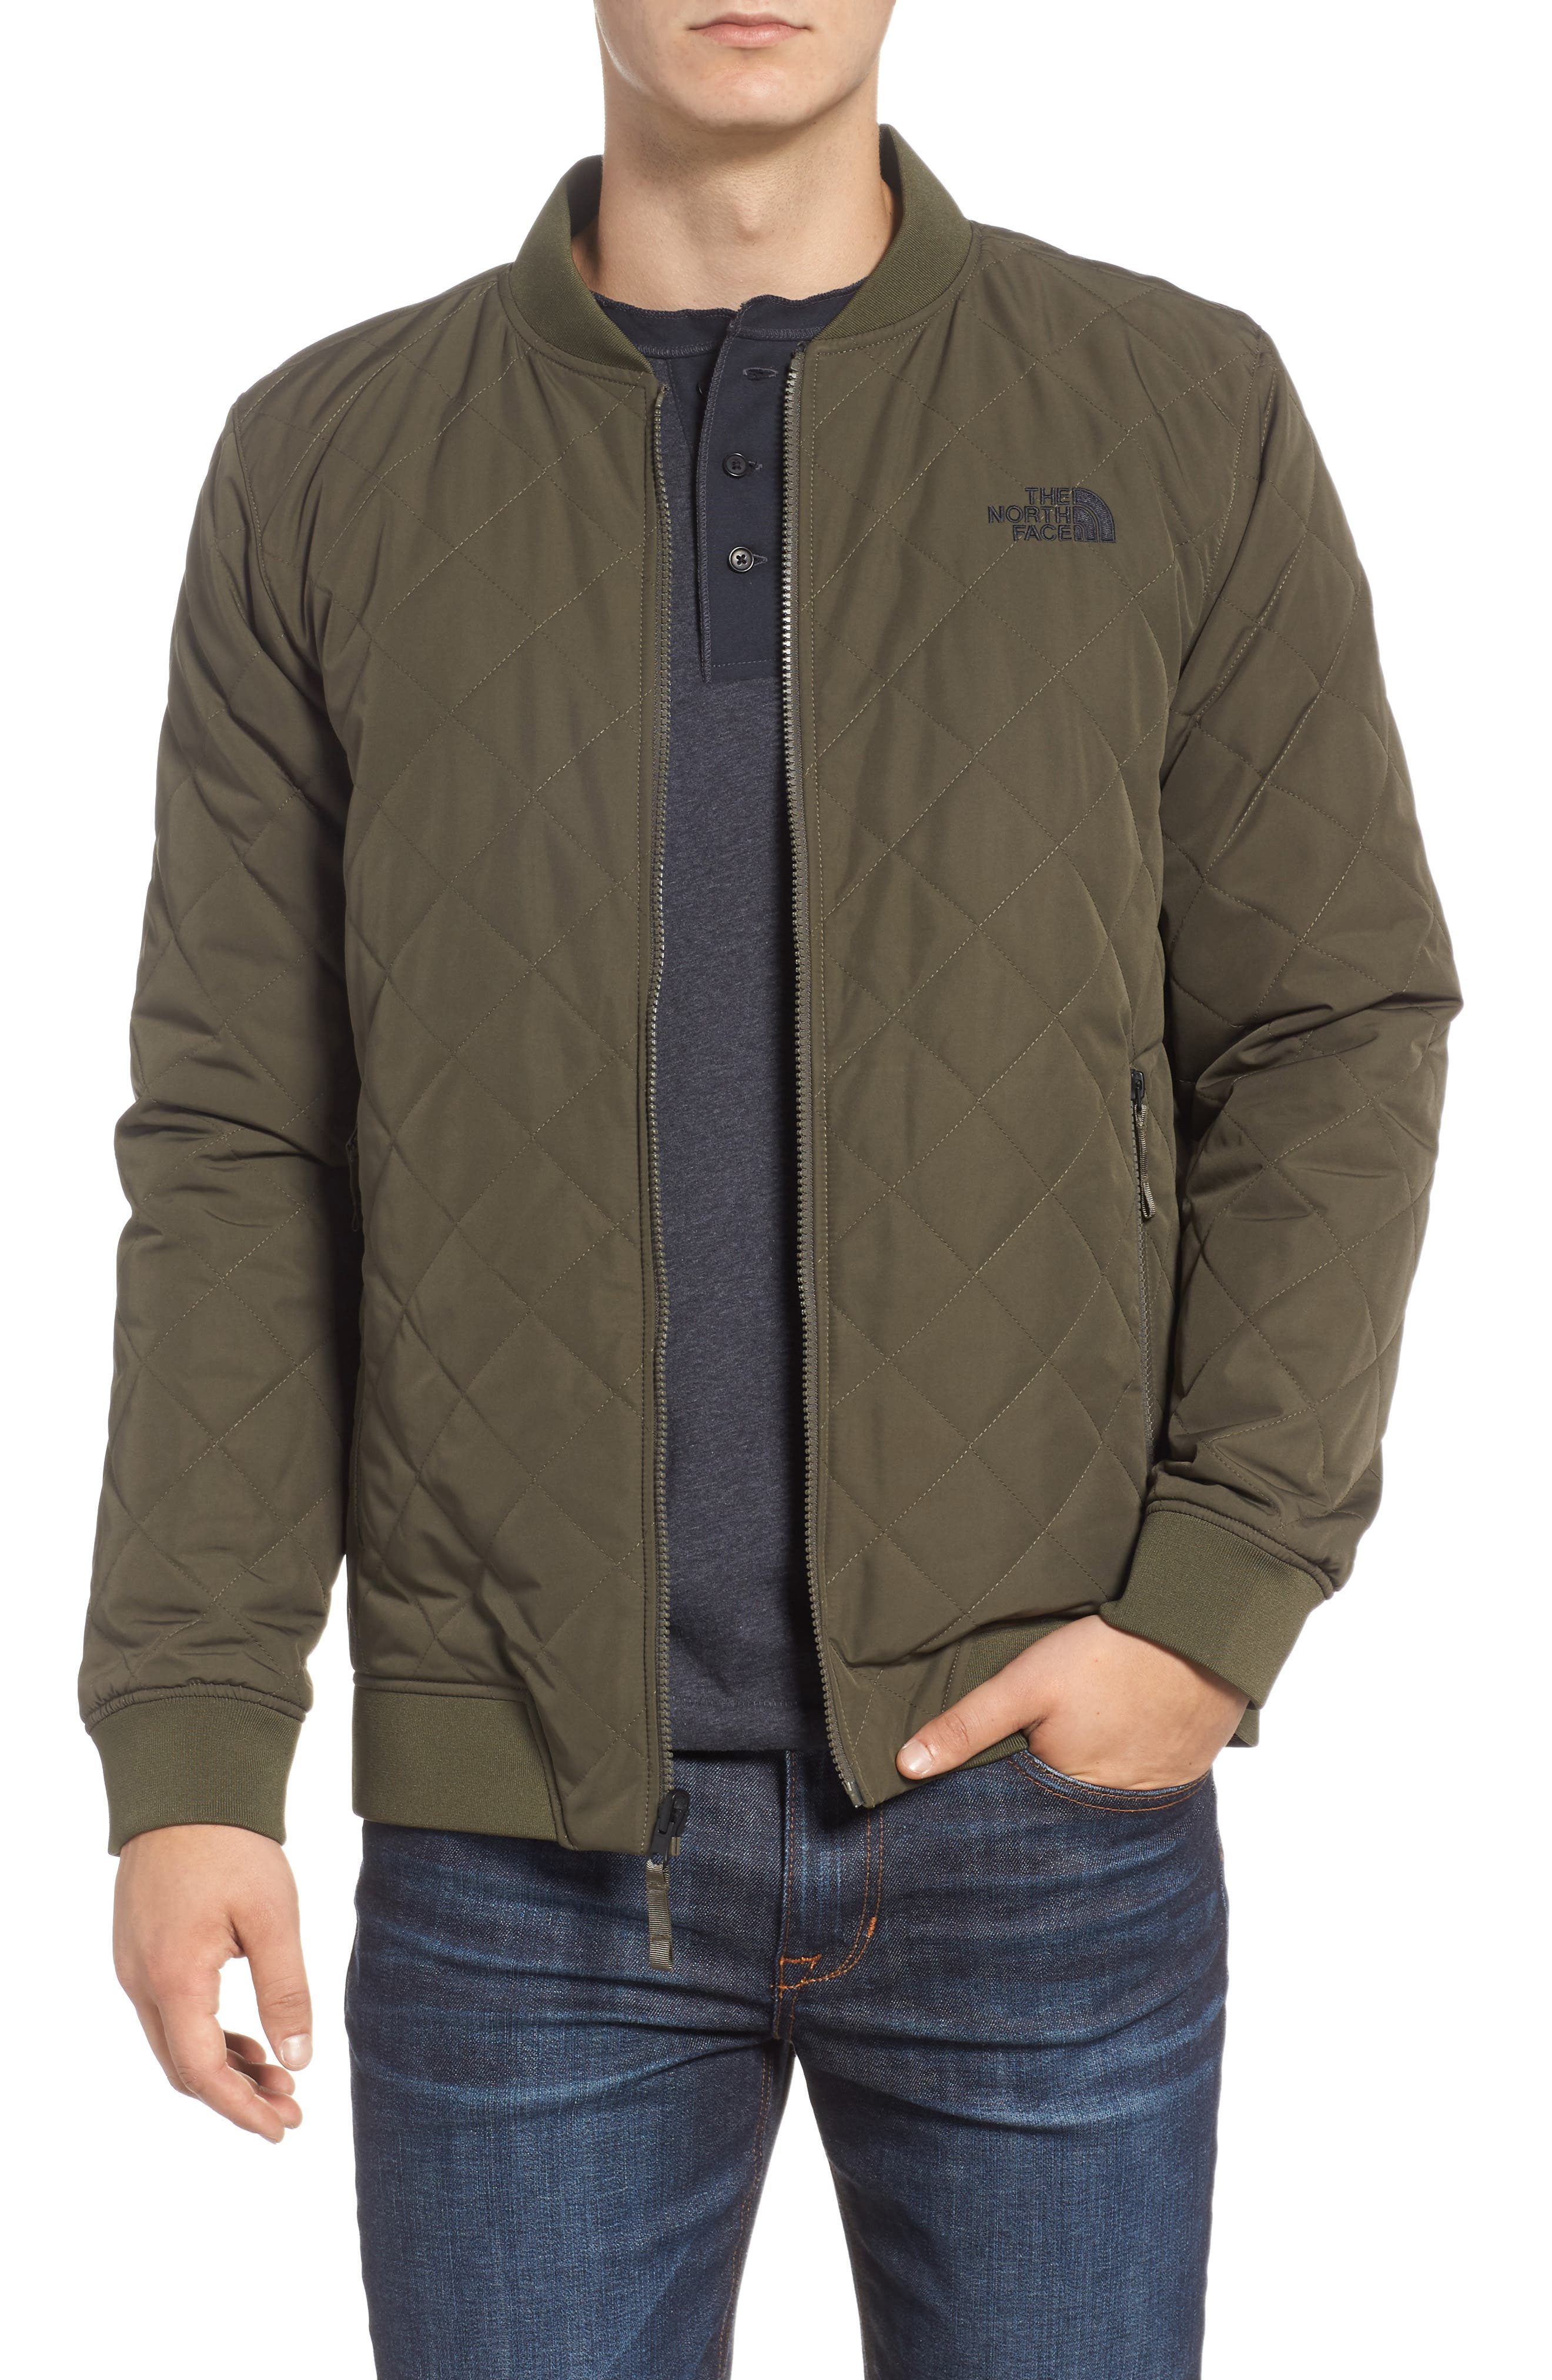 THE NORTH FACE,                             Jester Reversible Bomber Jacket,                             Main thumbnail 1, color,                             NEW TAUPE GREEN